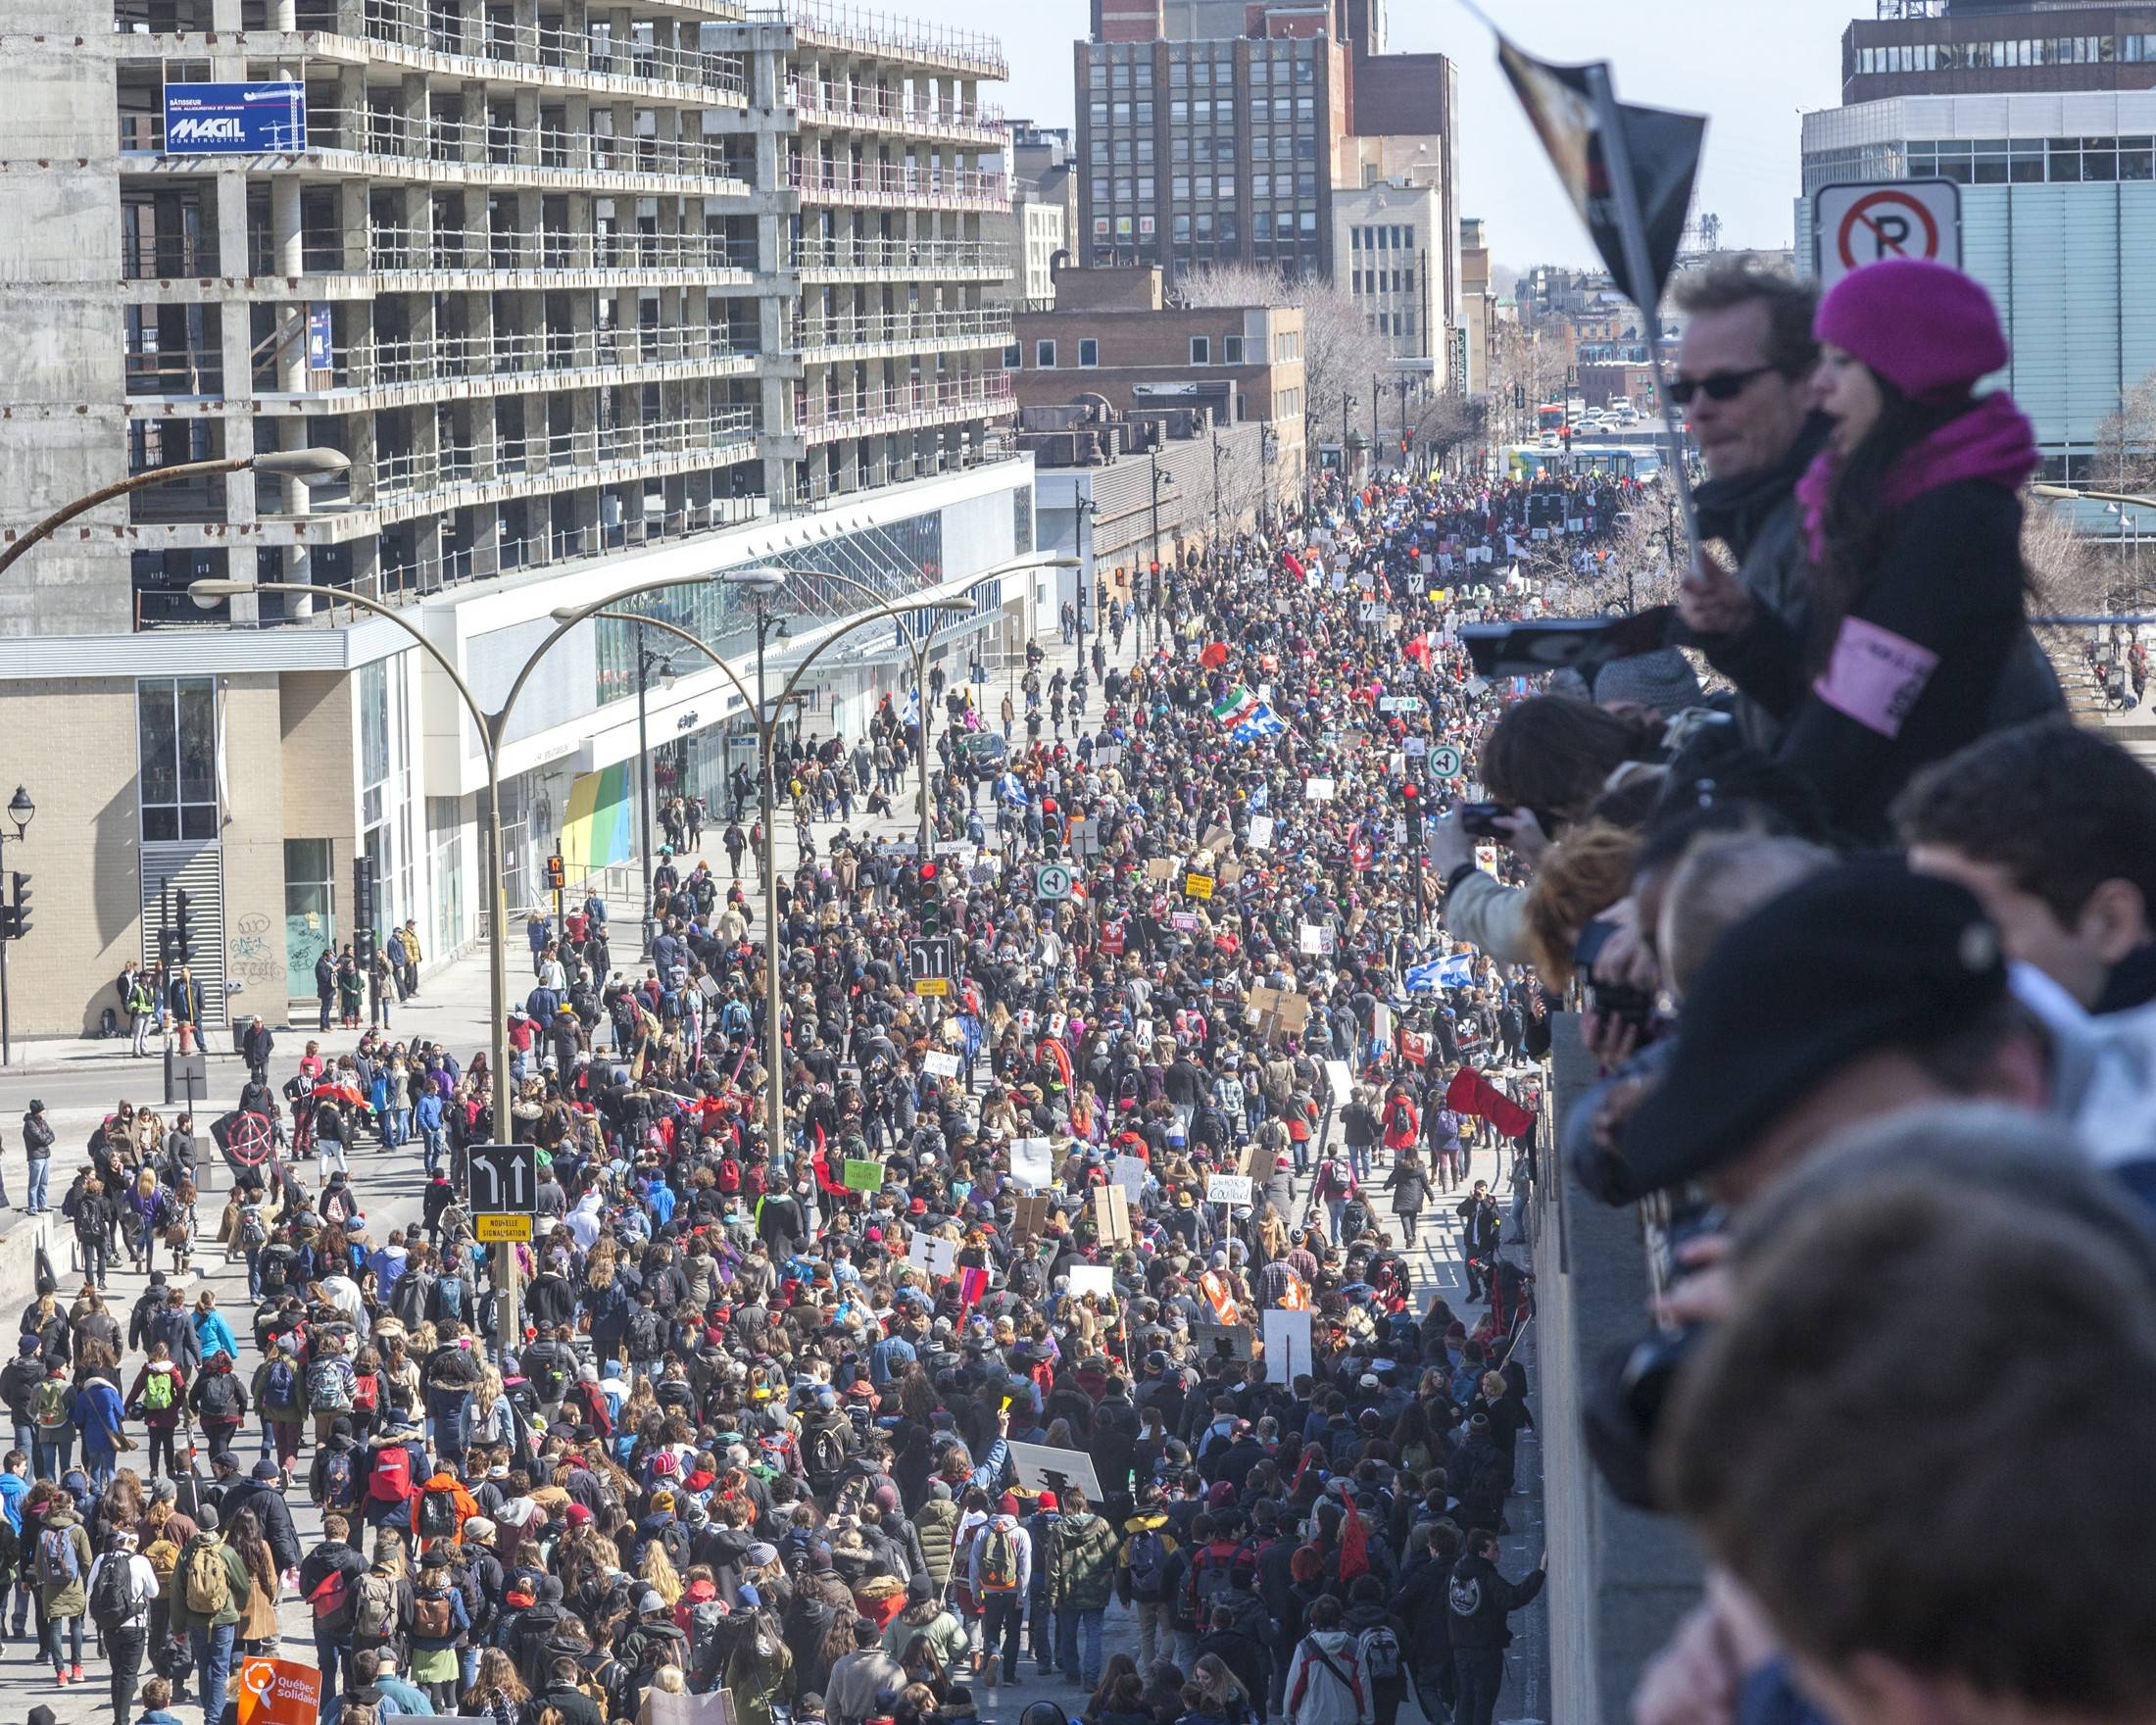 Students demonstrate against austerity changes proposed by the provincial government. April 2, 2015 in Montreal. (Photo: AJ Korkidakis)